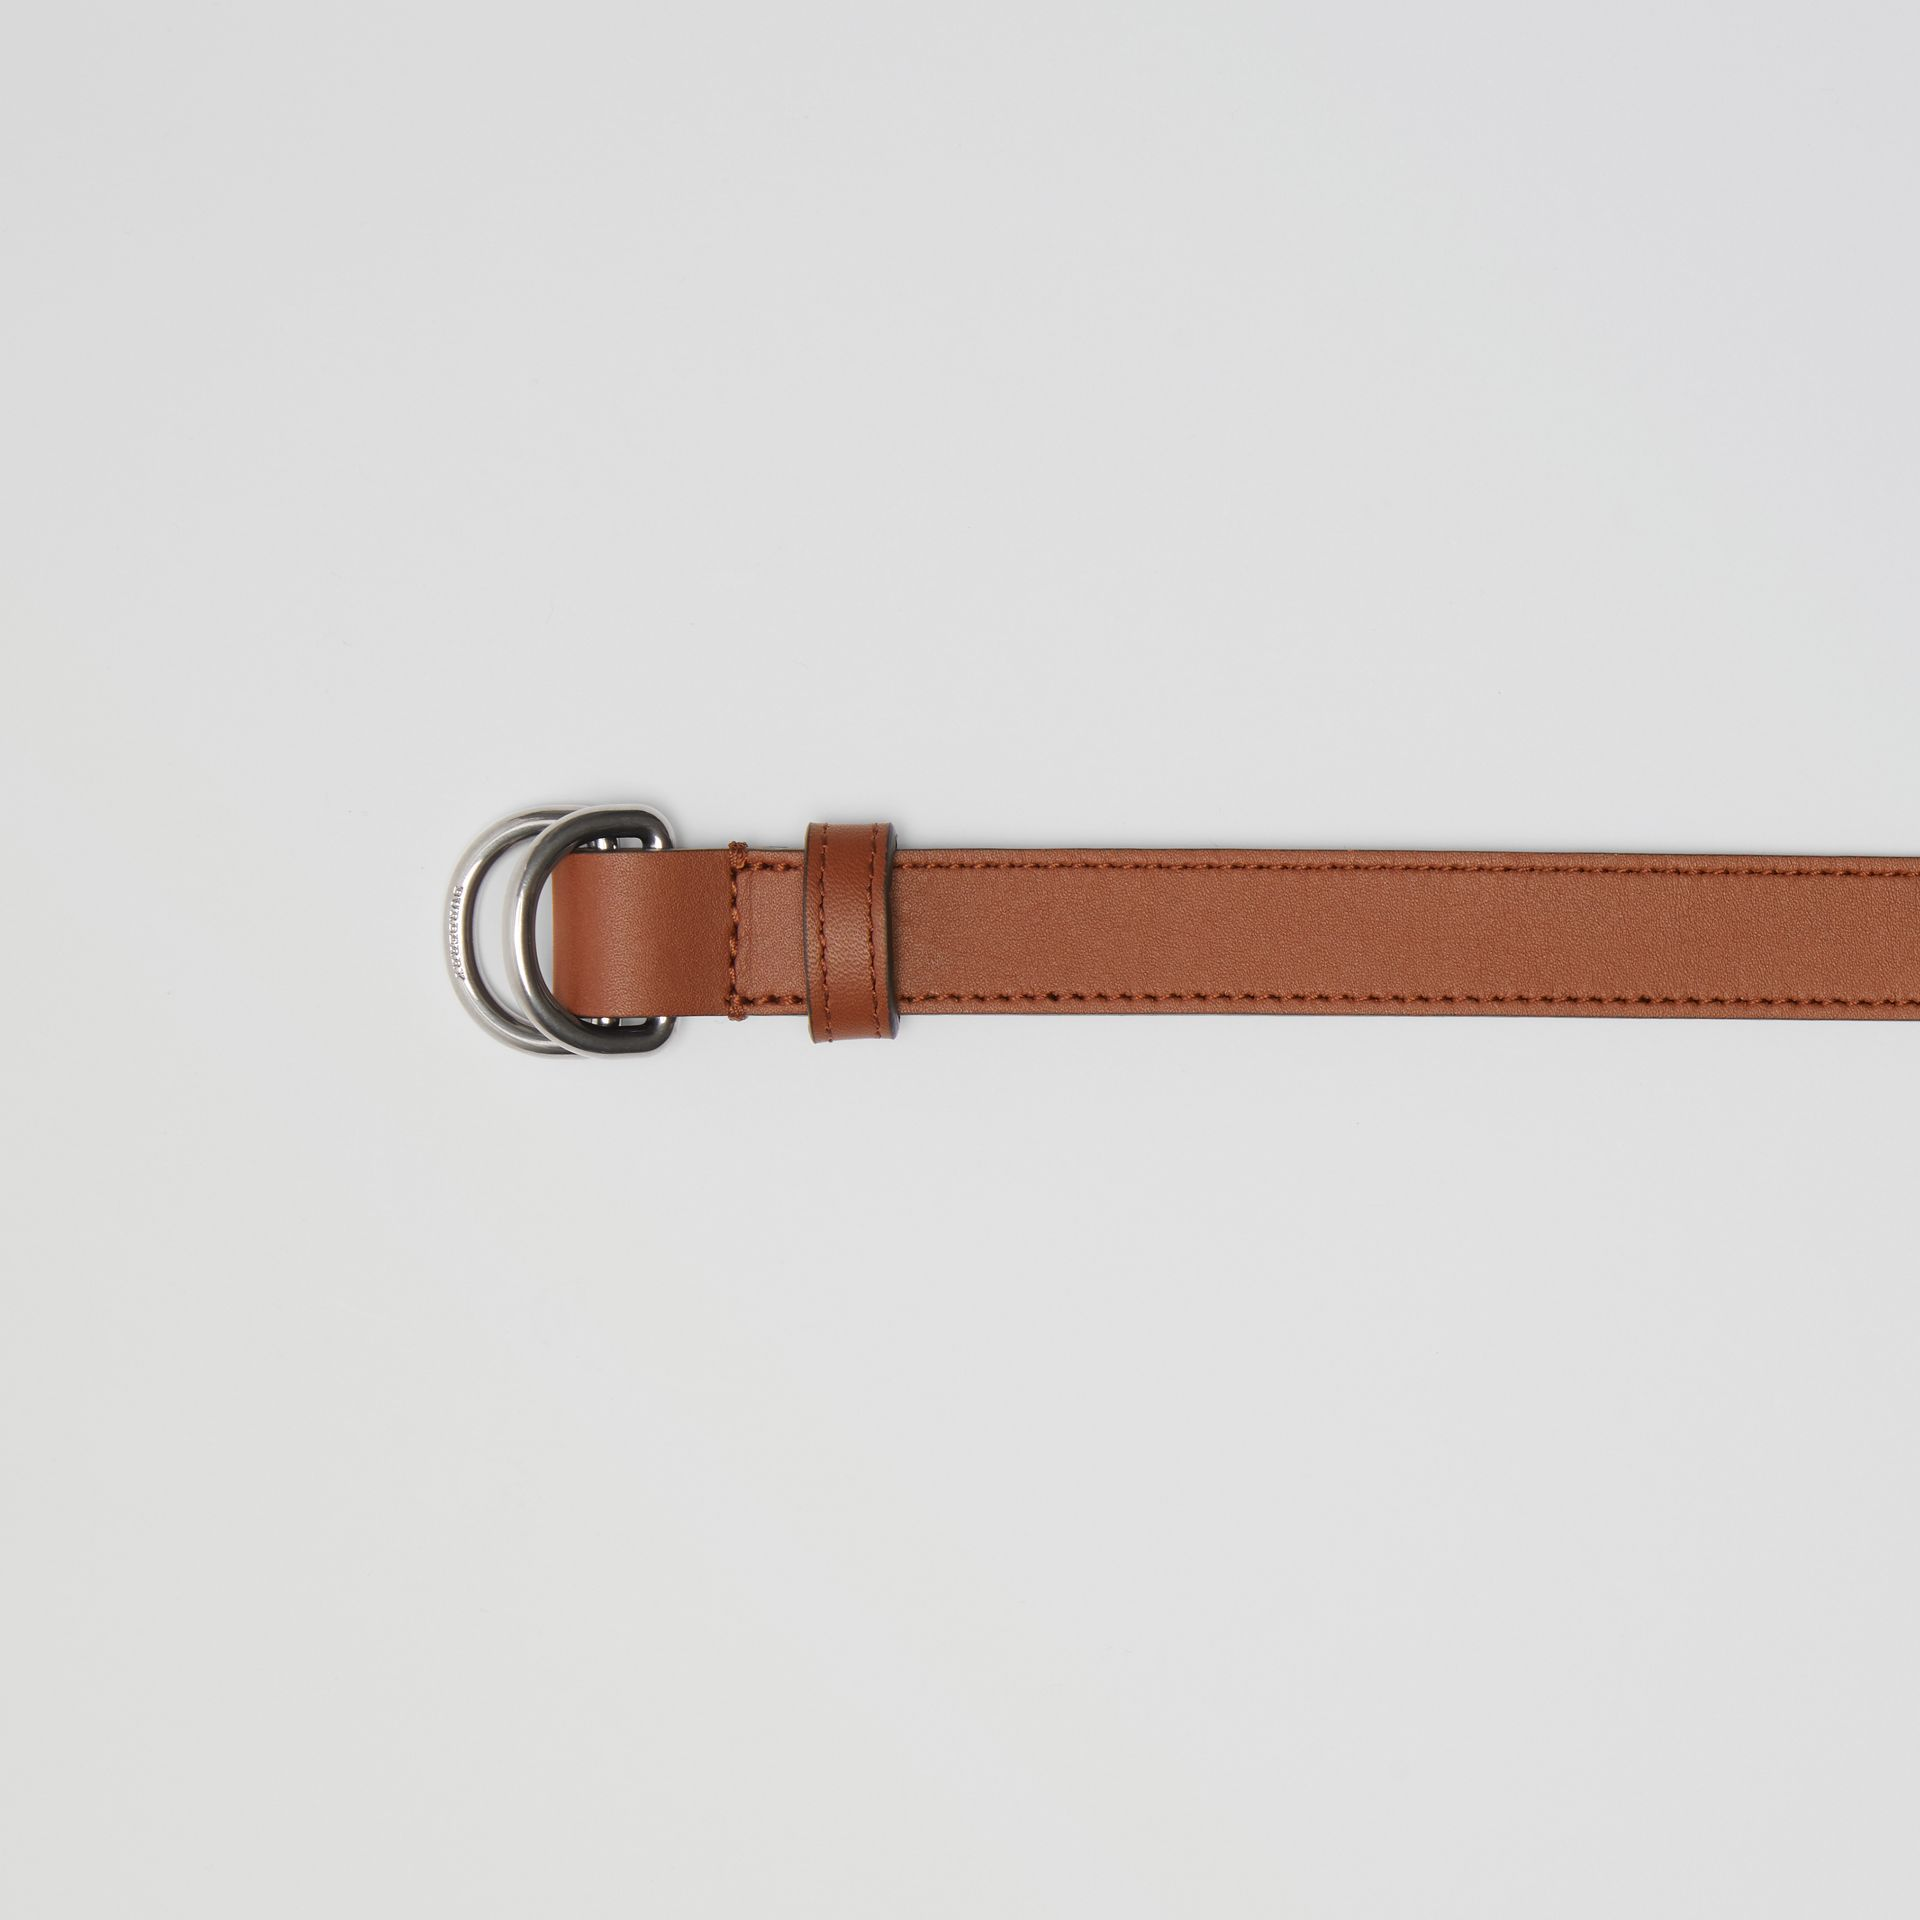 Slim Leather Double D-ring Belt in Tan/natural Silver - Women | Burberry - gallery image 1